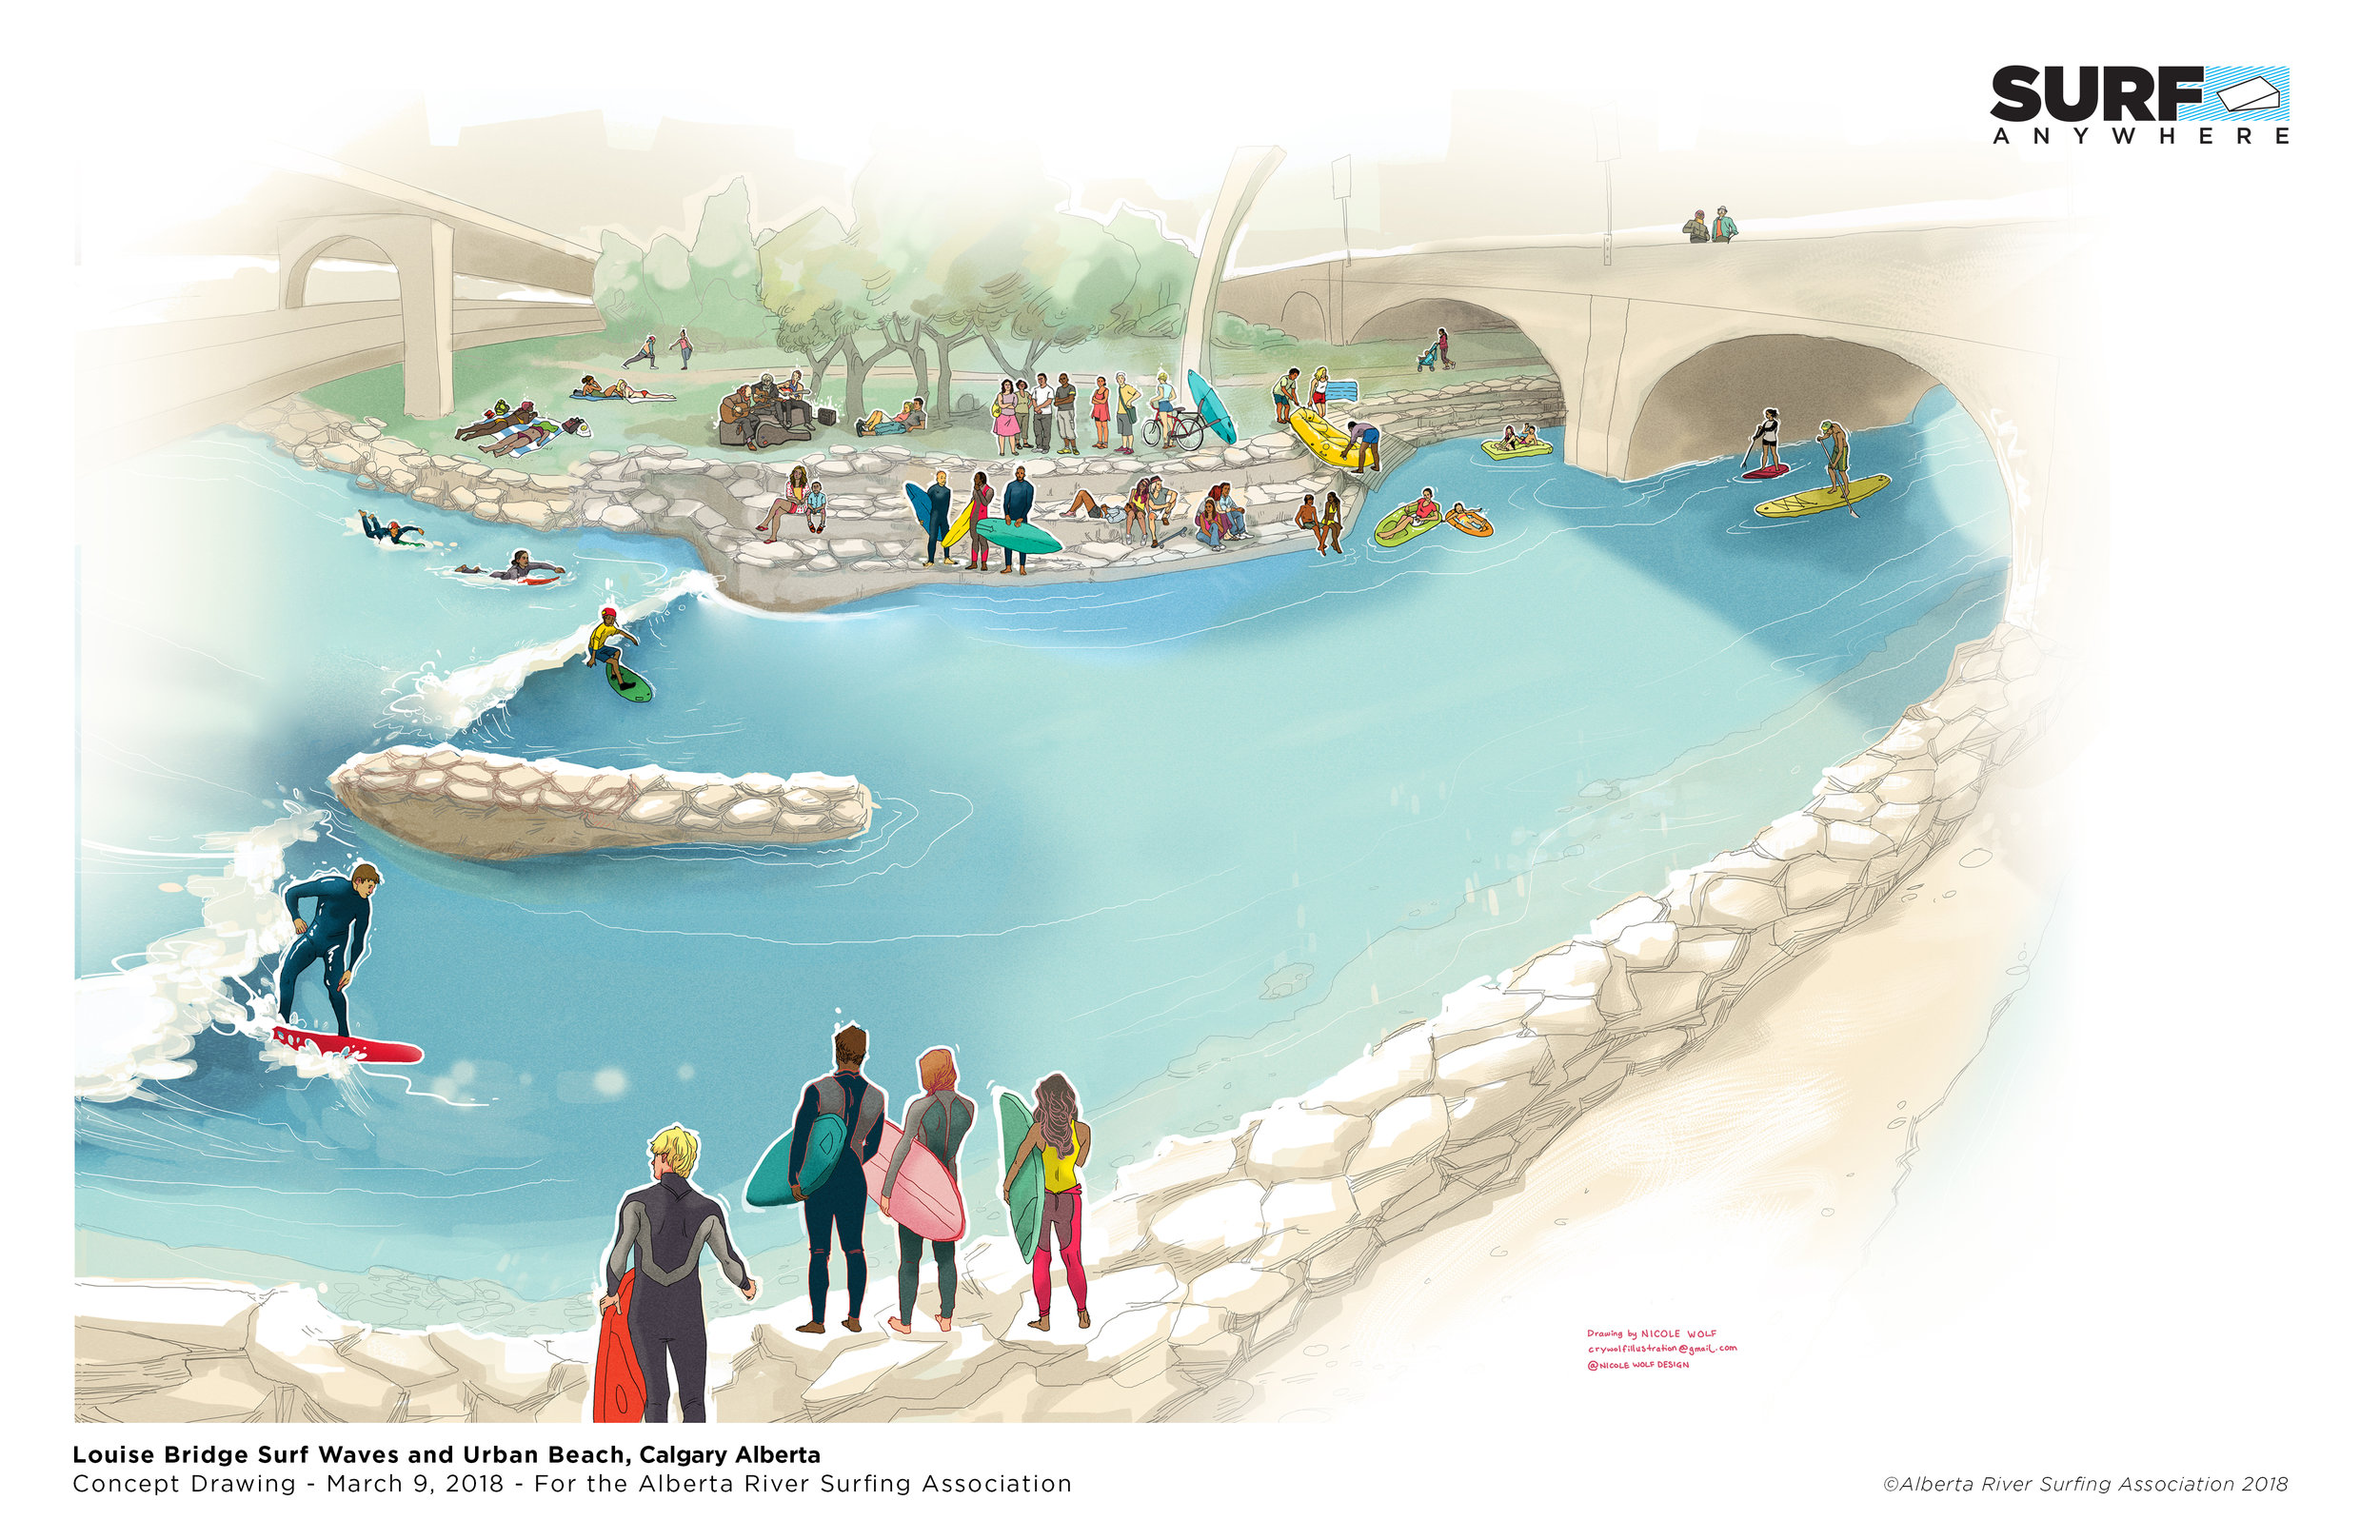 Concept Drawing Louise Bridge Surf Wave and Beach 180309.jpg